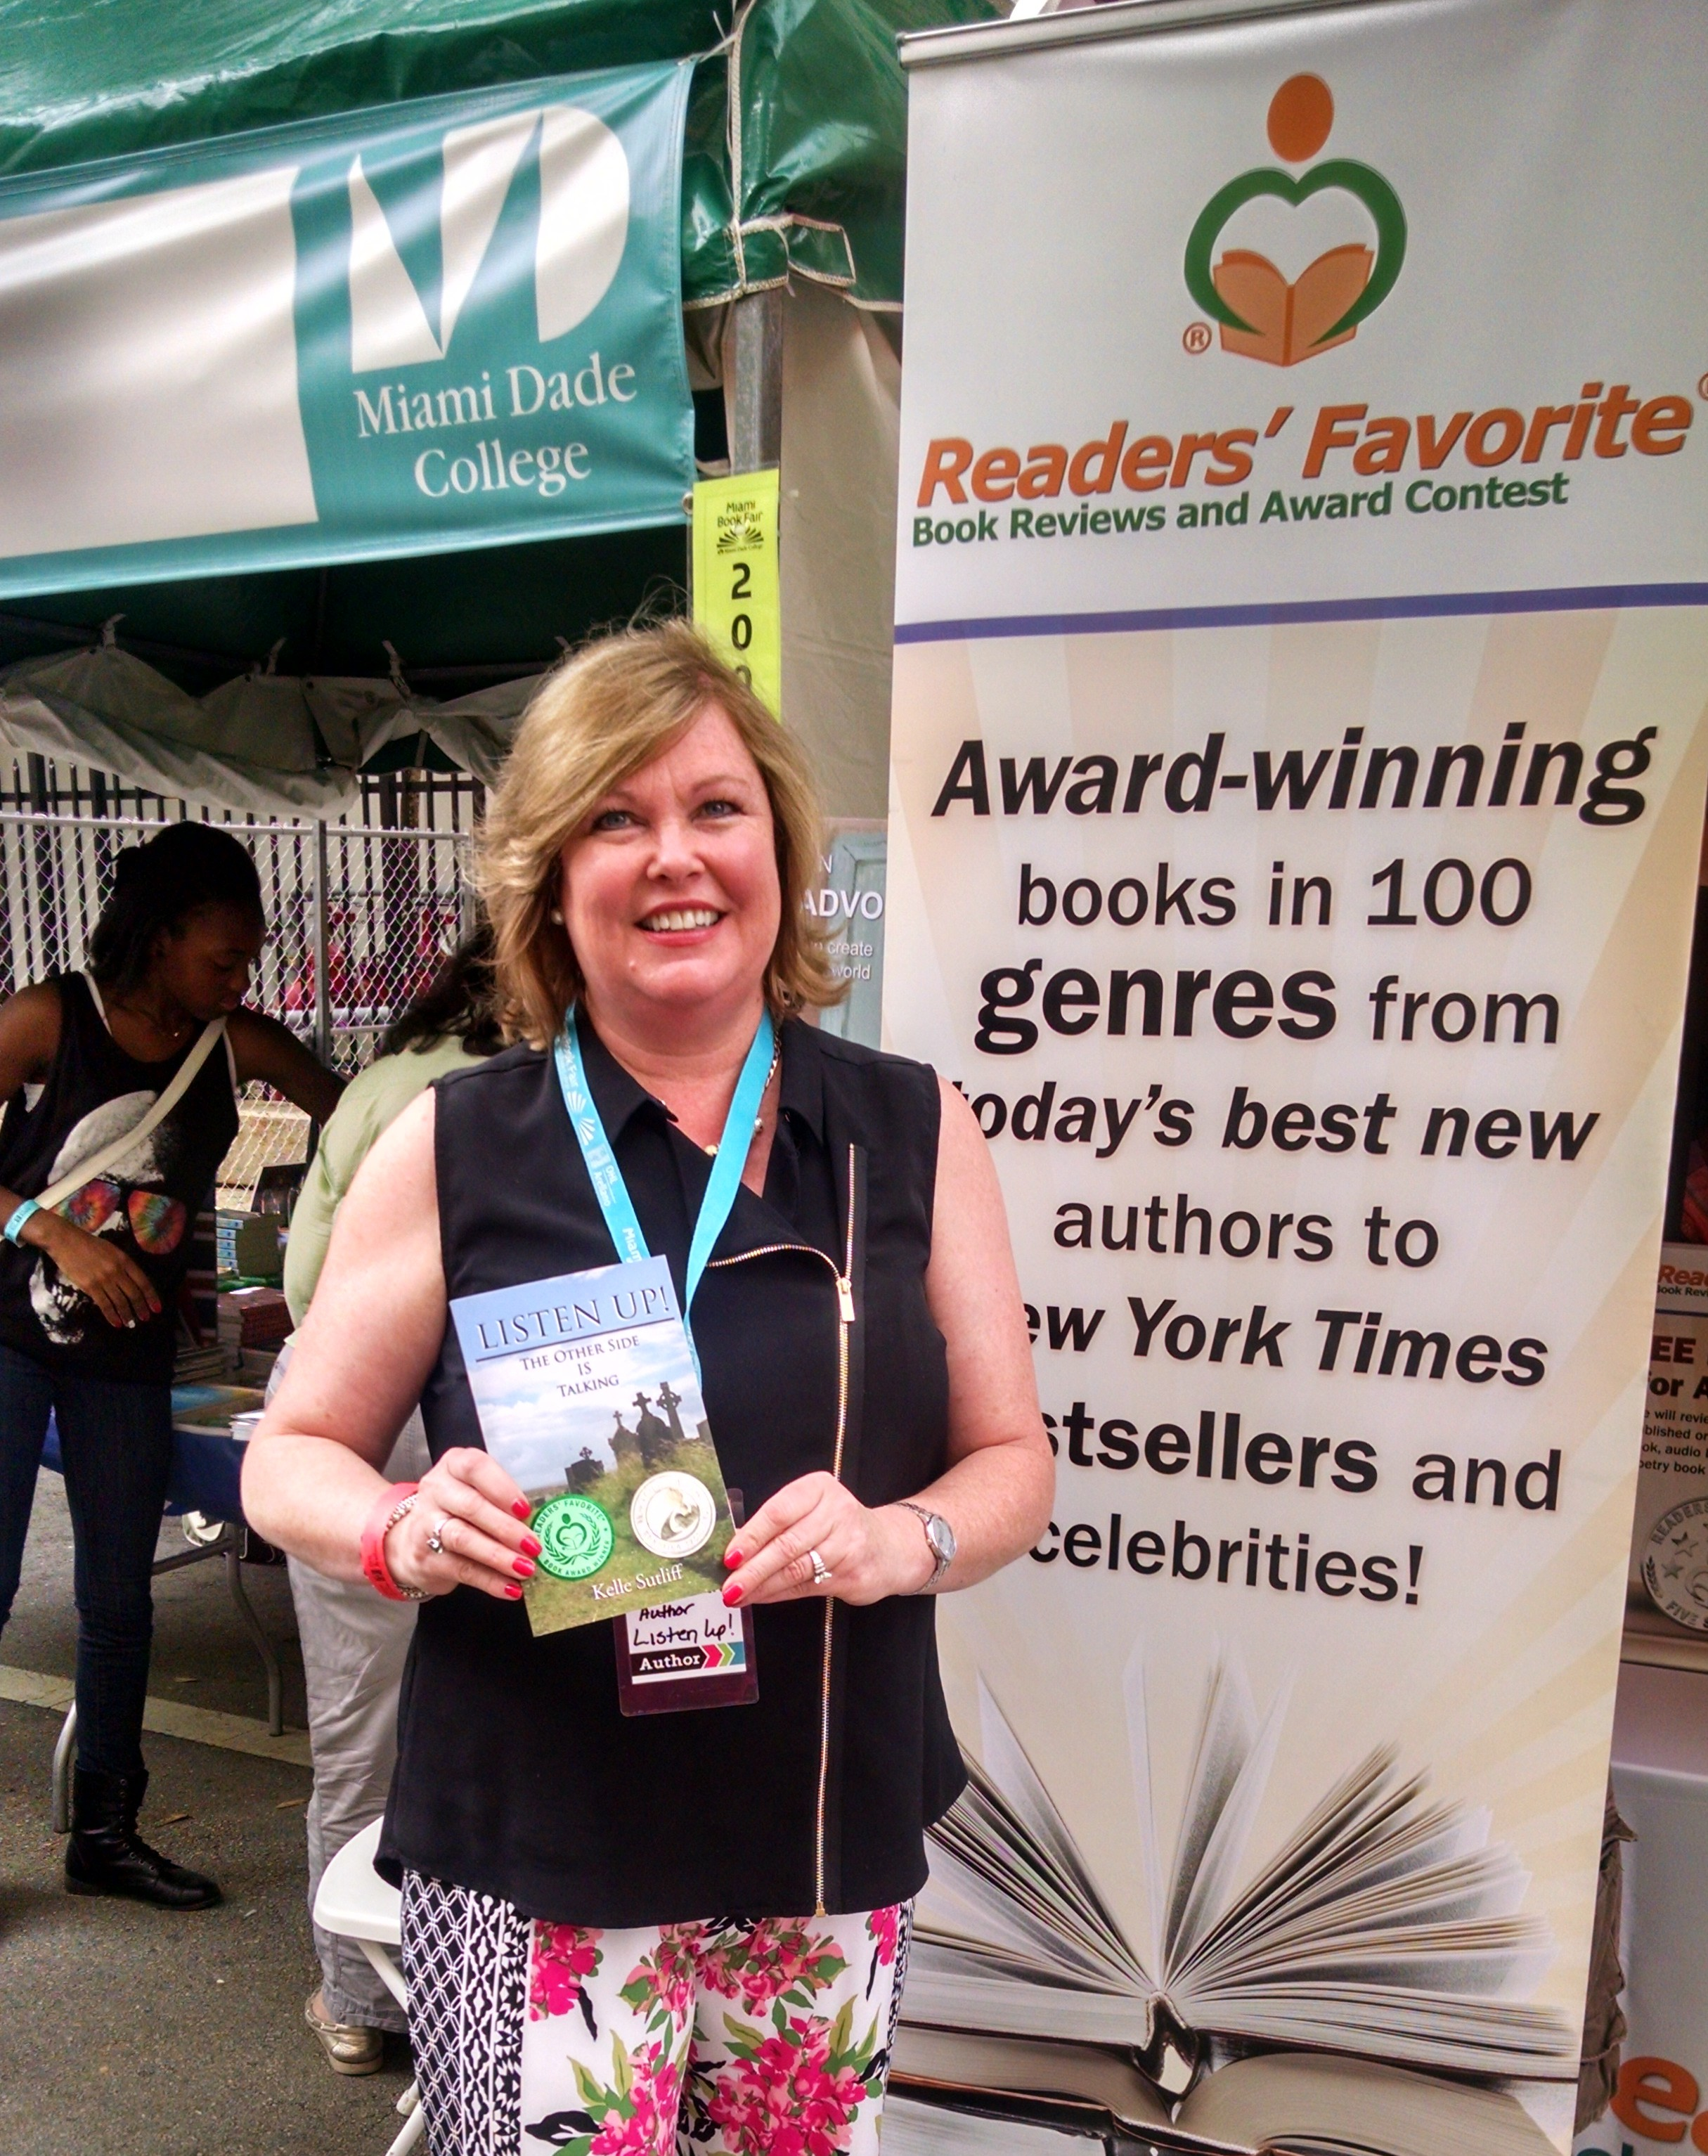 Author Kelle Sutliff Readers' Favorite Book Award Winner